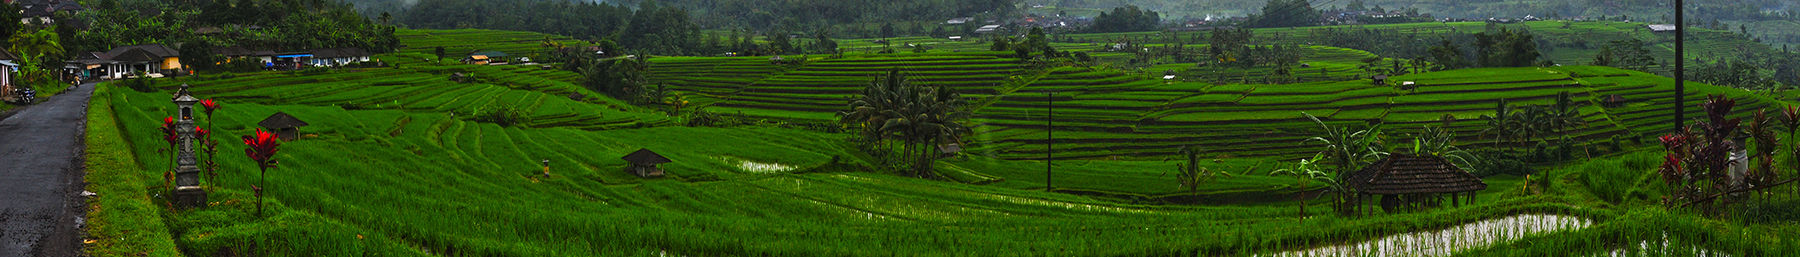 Bali banner Rice terraces.jpg